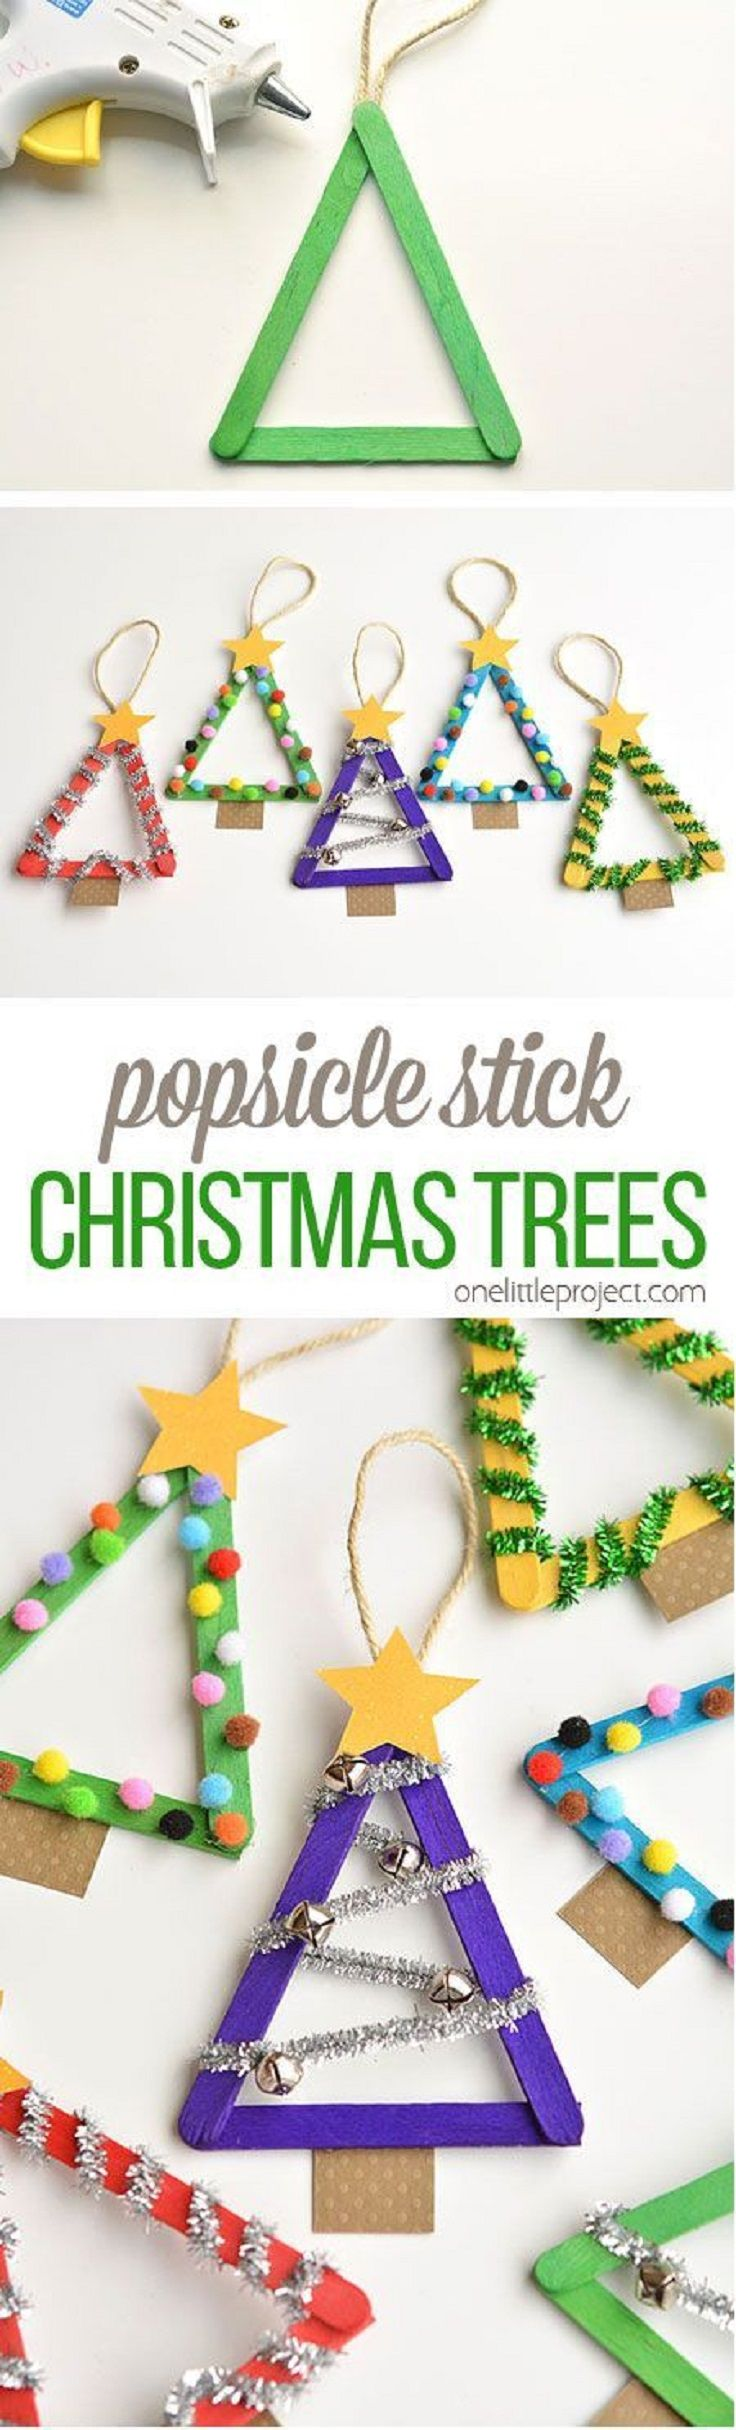 Popsicle Stick Christmas Trees - 11 Kid-Friendly Christmas Crafts To Occupy Your Loved Ones During The Season